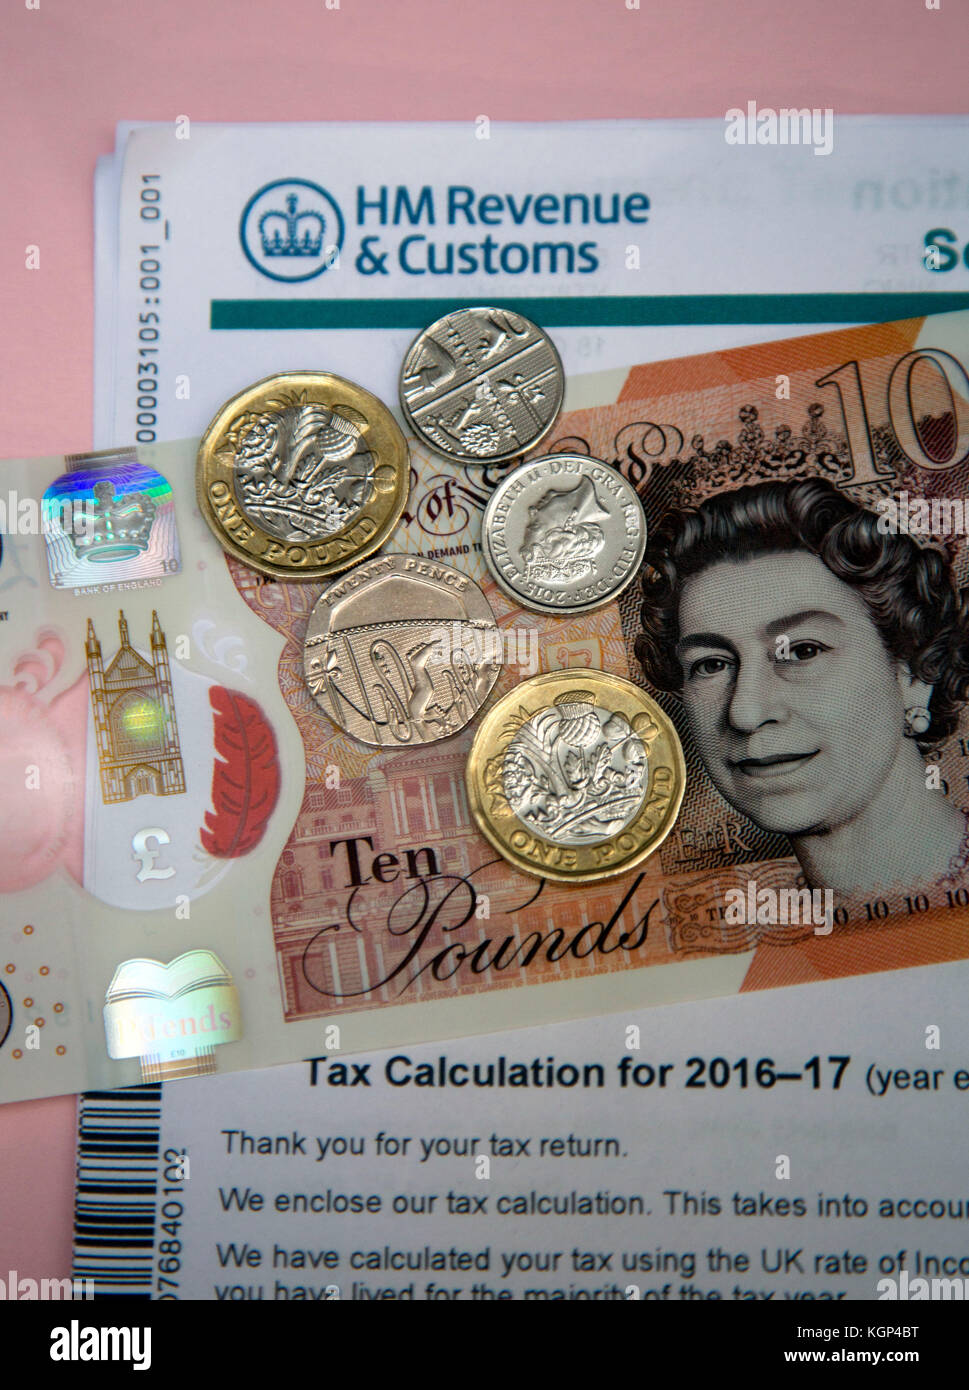 Income Tax demand from HM Revenue & Customs, London - Stock Image